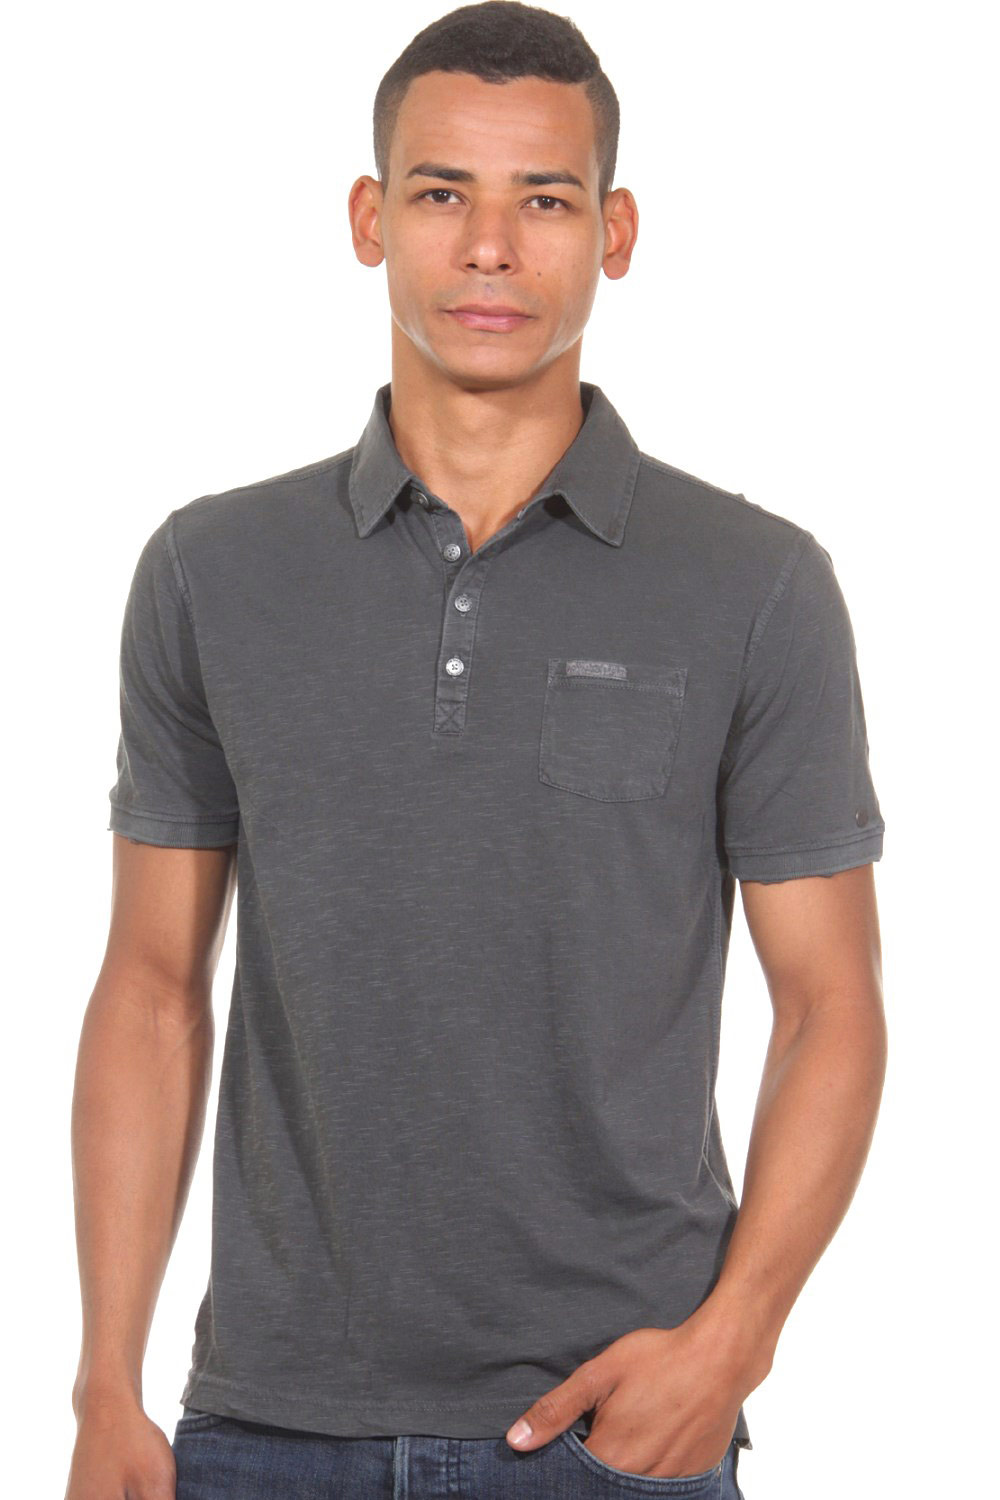 TOM TAILOR POLO TEAM Poloshirt slim fit auf oboy.de